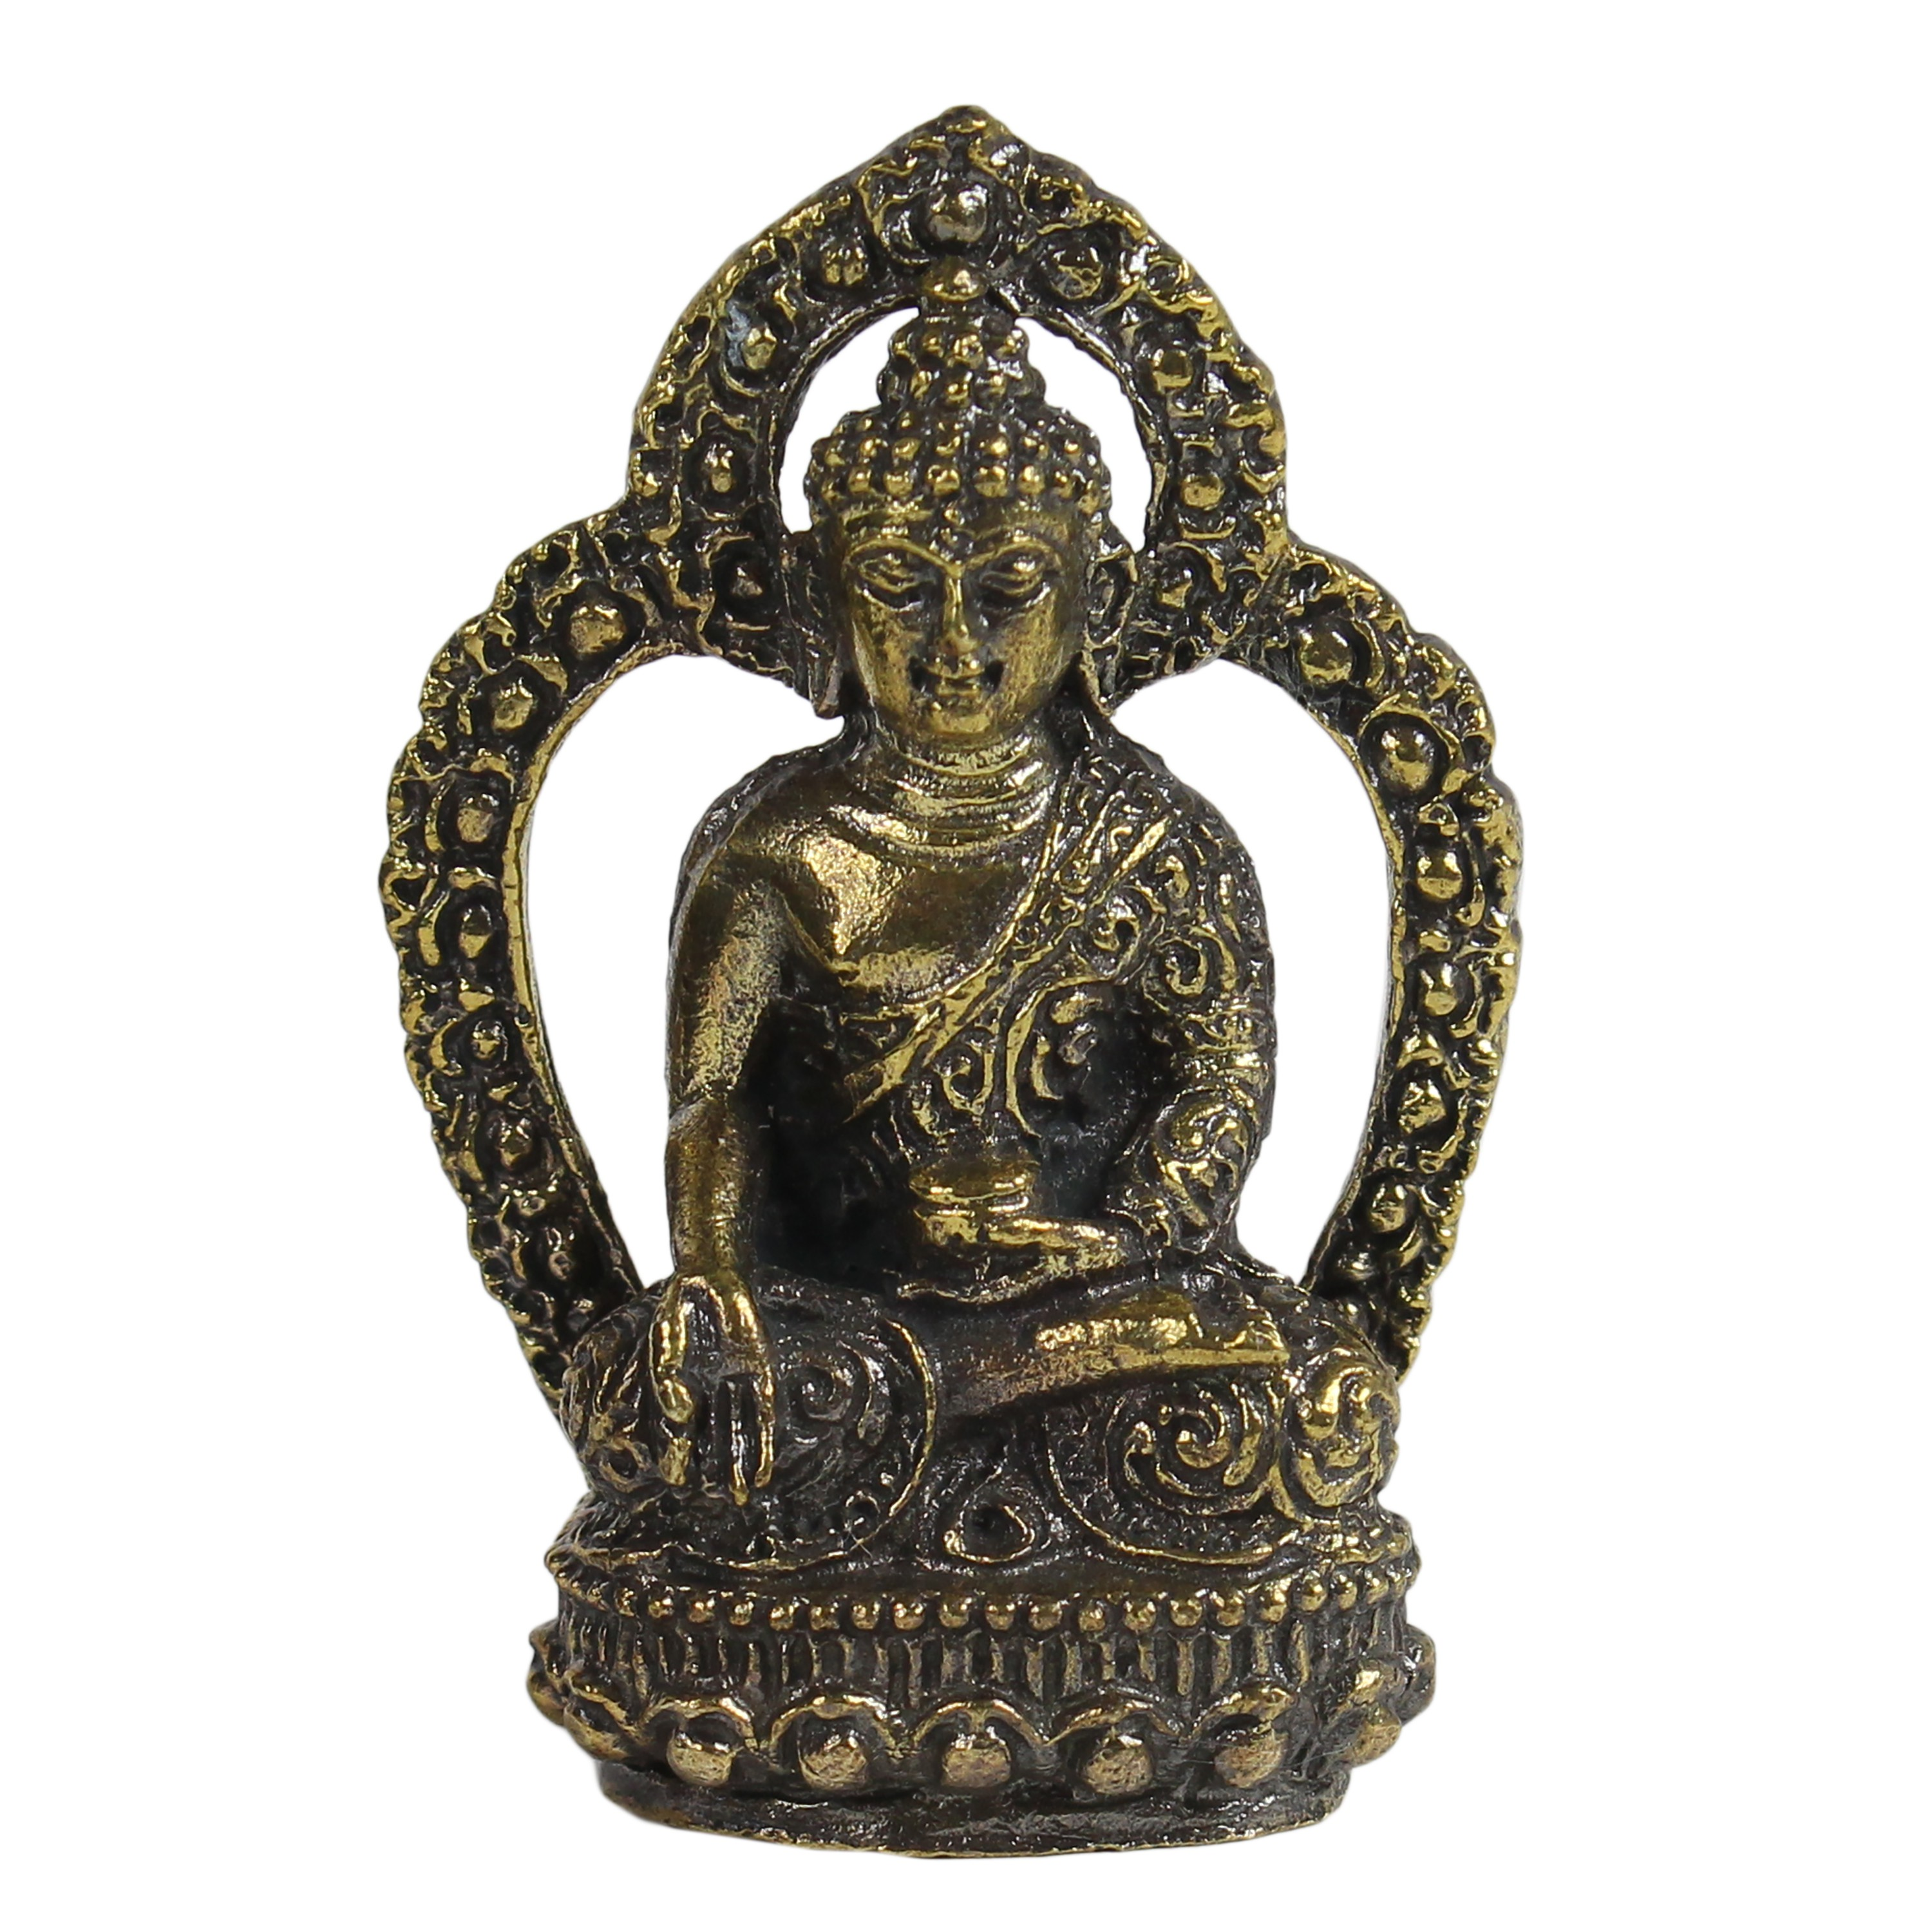 kleiner buddha messing figur messingbuddha messingfigur. Black Bedroom Furniture Sets. Home Design Ideas